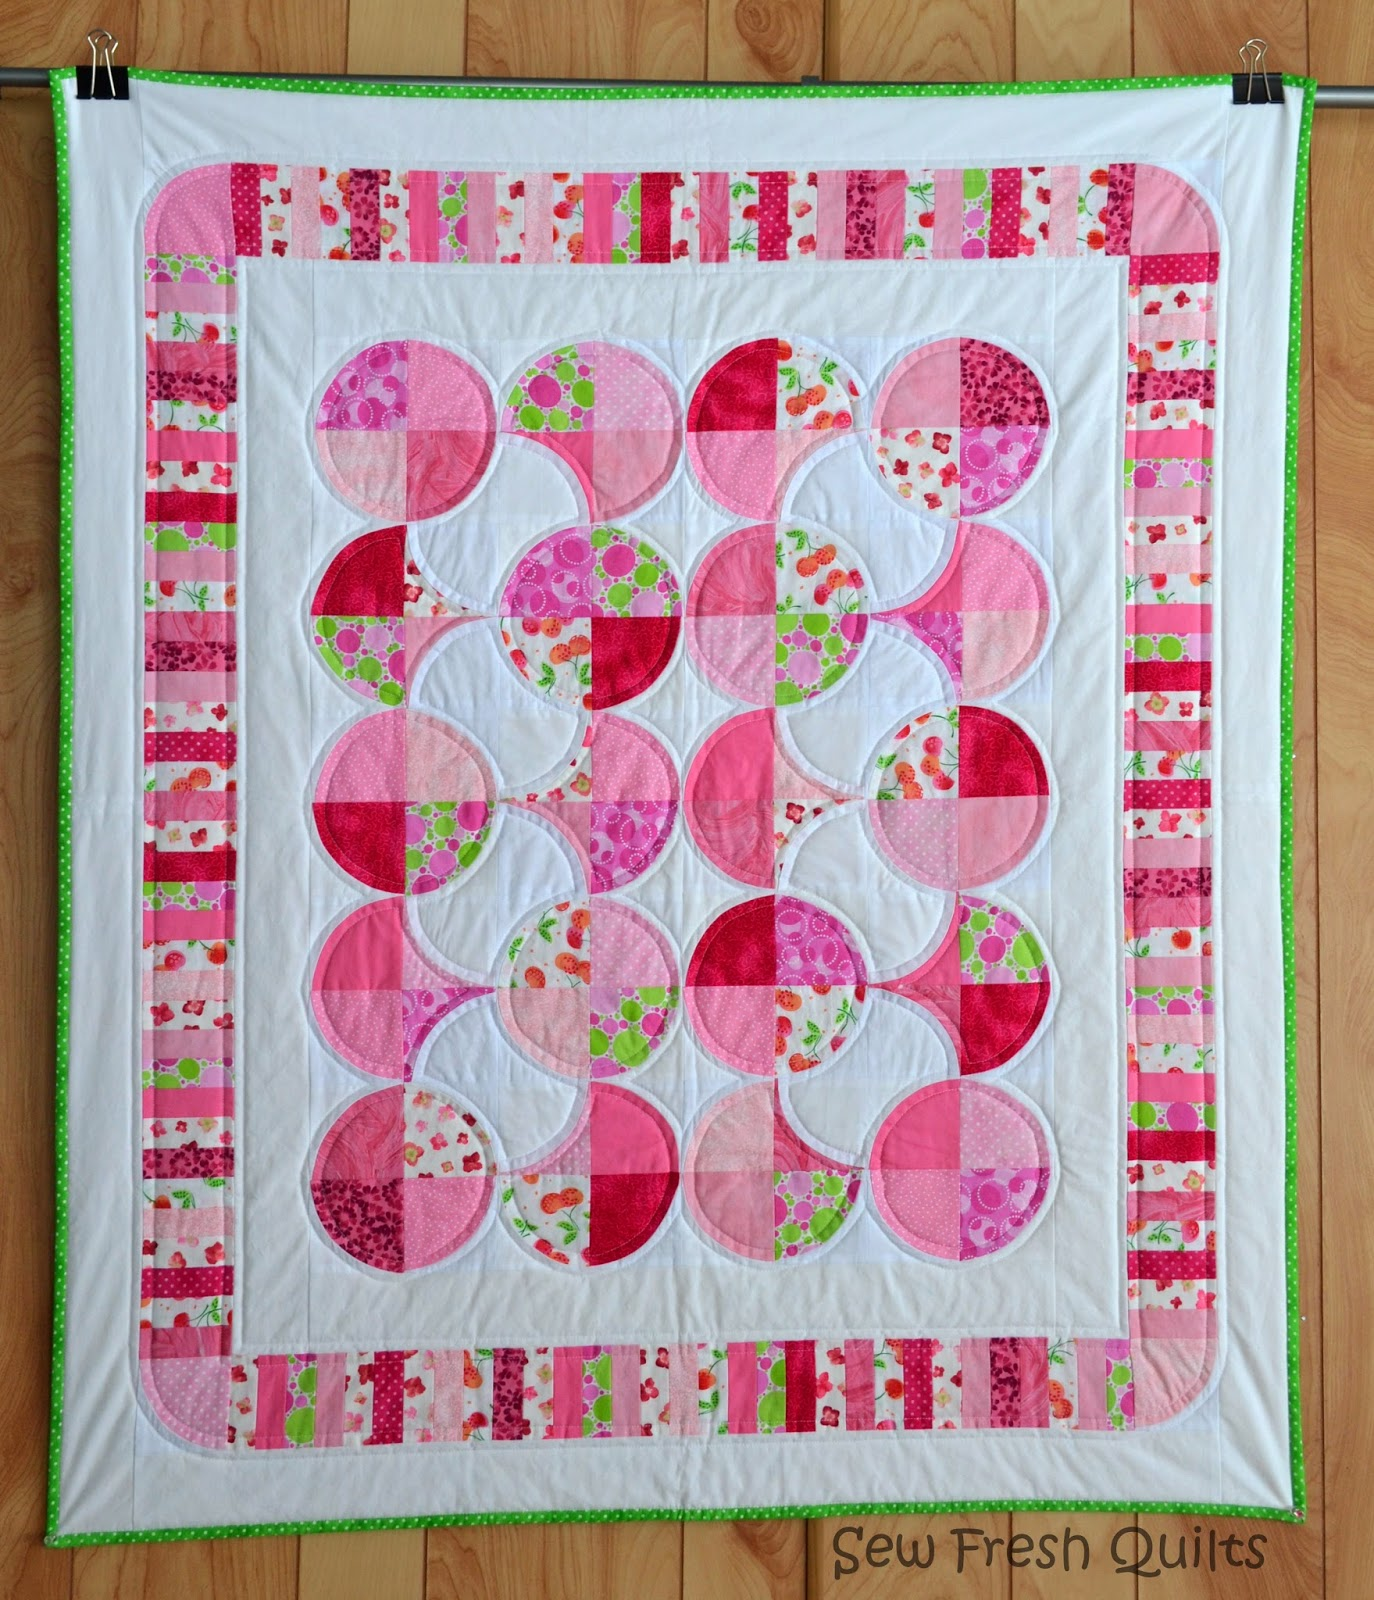 http://sewfreshquilts.blogspot.ca/2013/04/peppermint-dreams.html